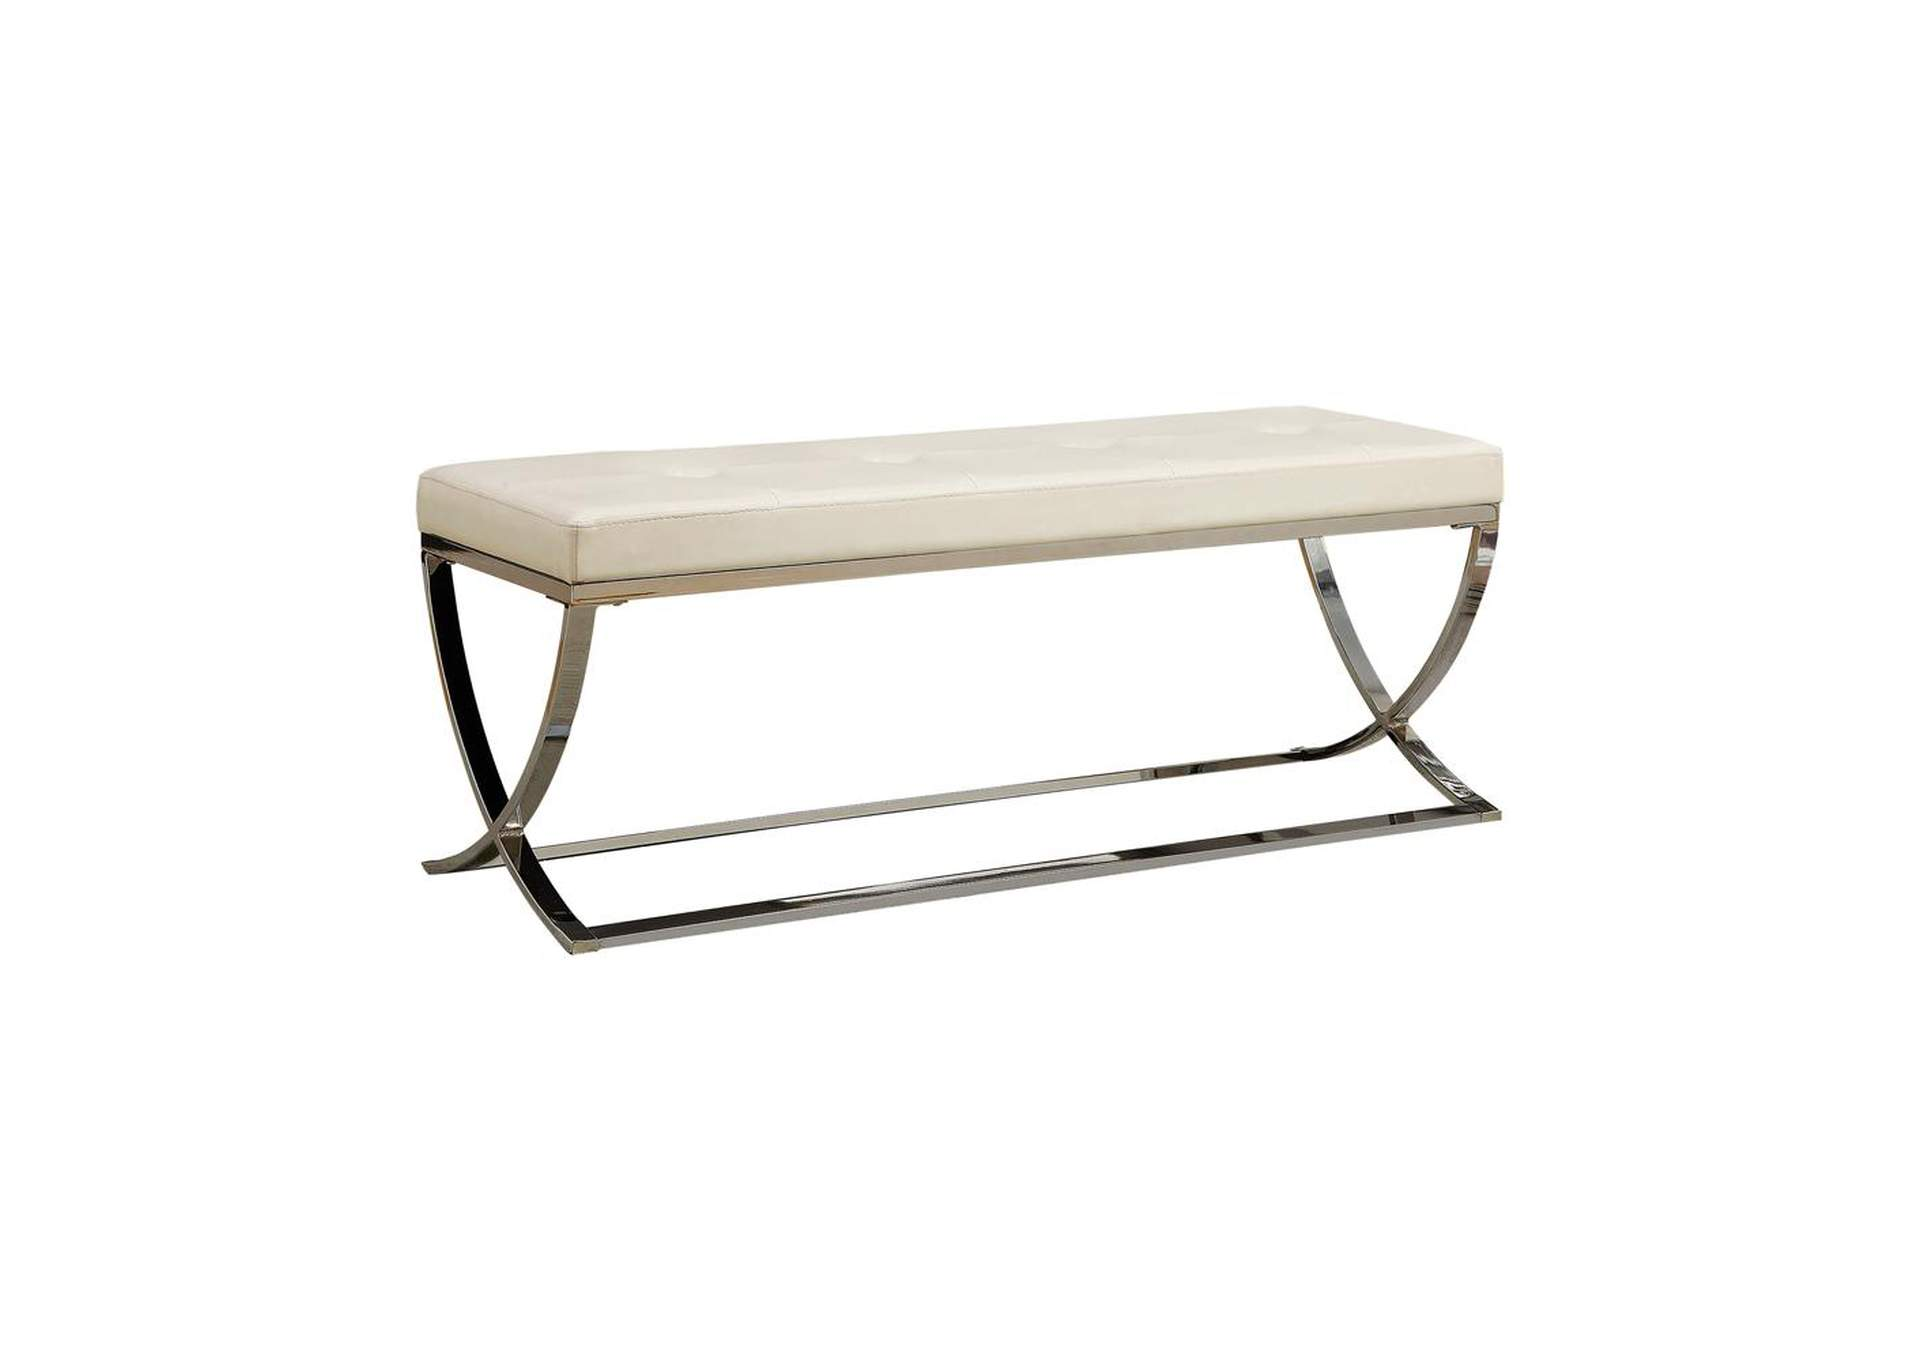 Chrome Contemporary Accent Dining Bench,Coaster Furniture